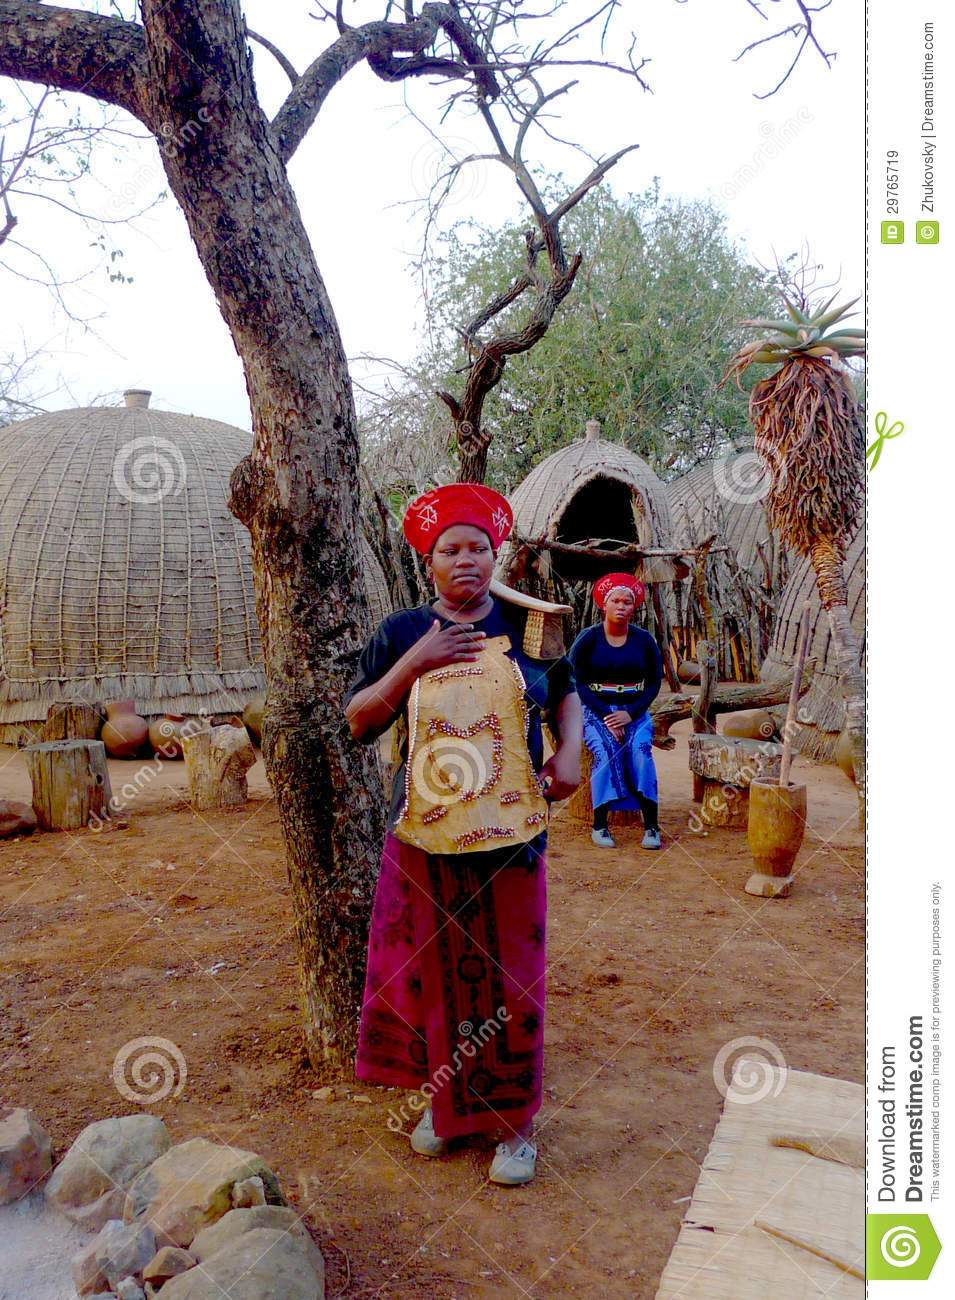 Zulu Shakaland Zulu woman in traditional closes in Shakaland Zulu Village, South Africa